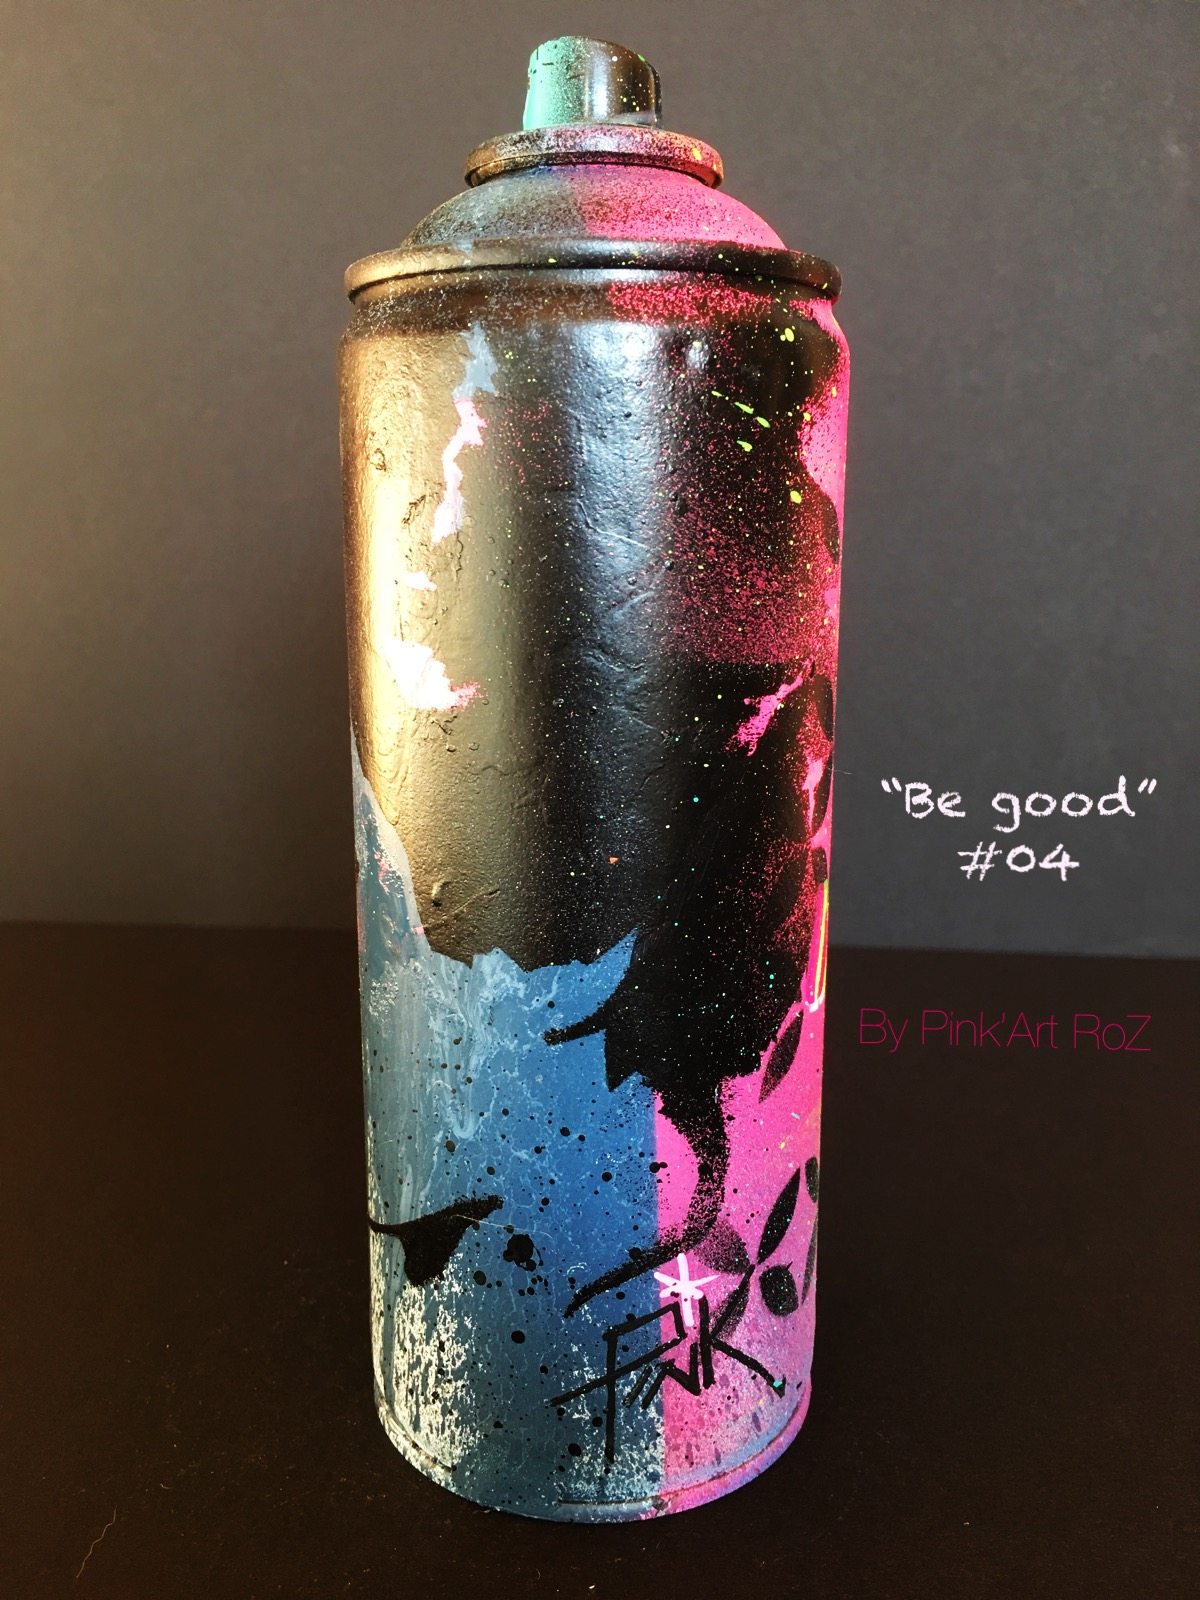 04 SPRAY BE GOOD 3 PINKARTROZ